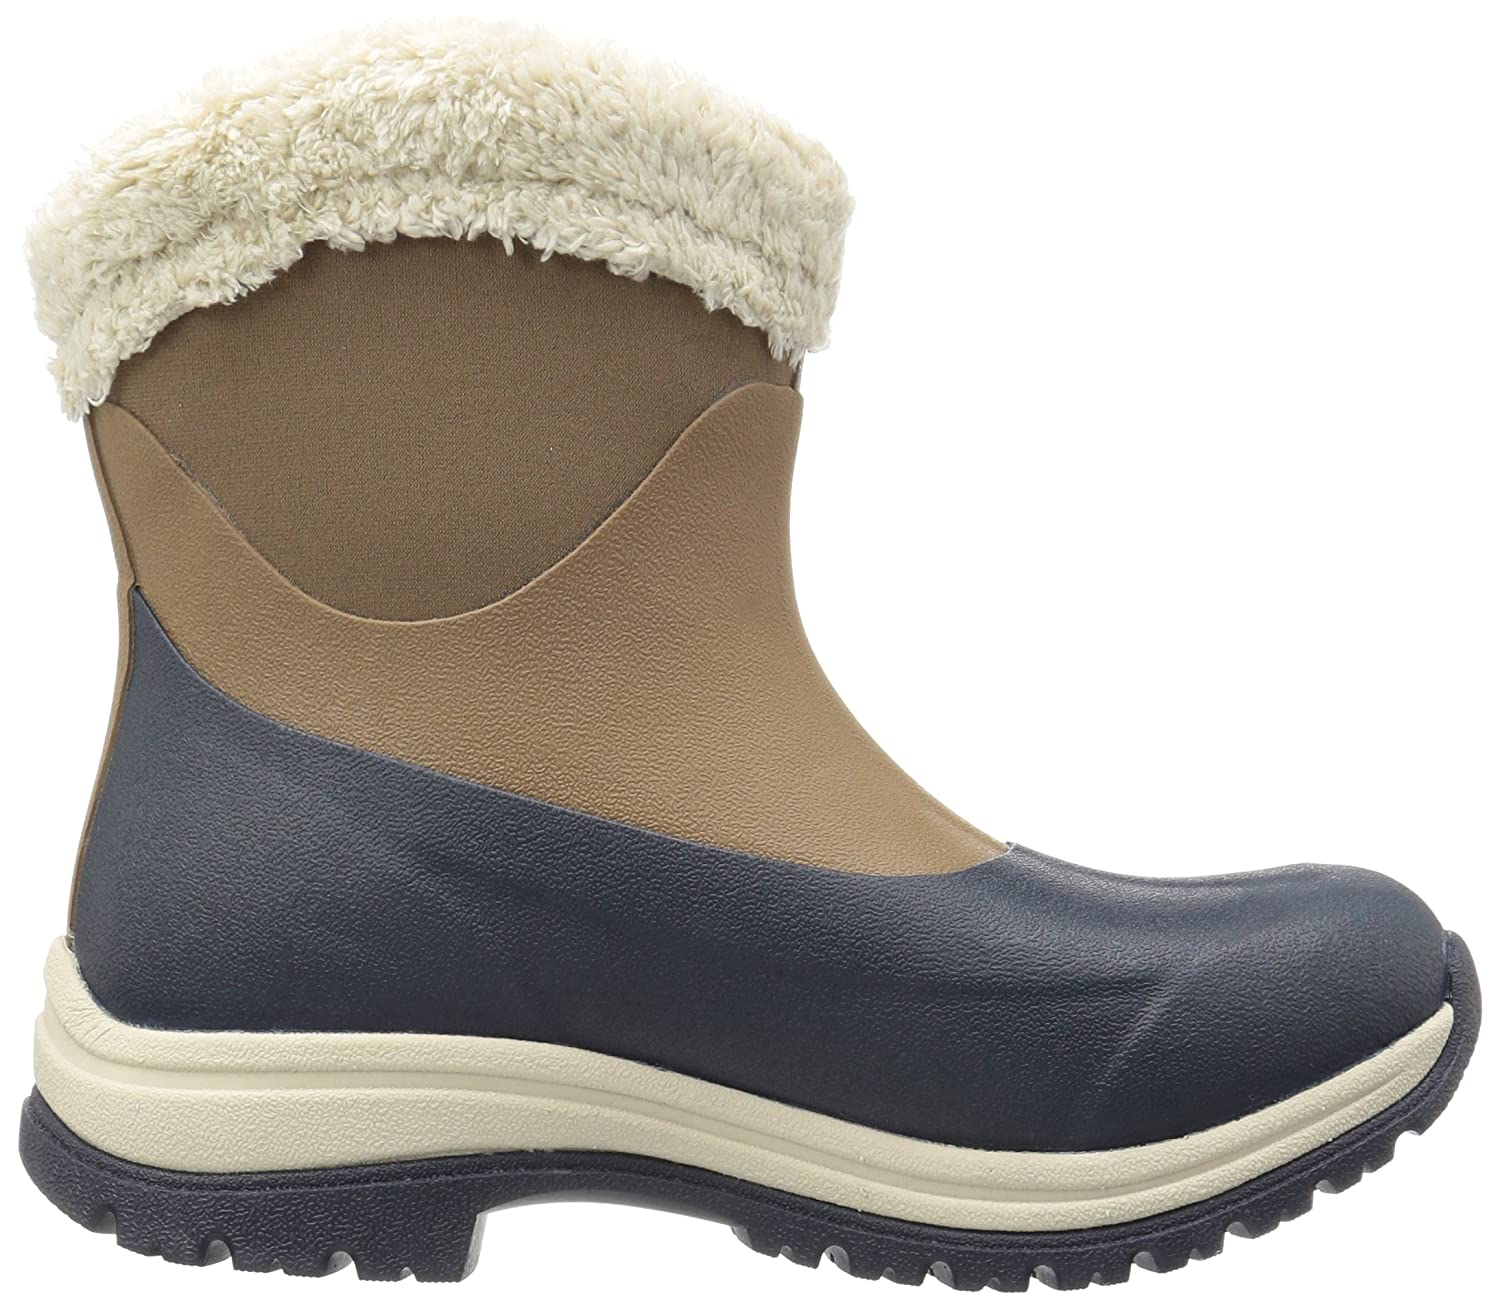 69b4bb853acf ... Muck Arctic Arctic Arctic Après Mid-Height Casual Slip-On Rubber  Women s Winter Boots ...